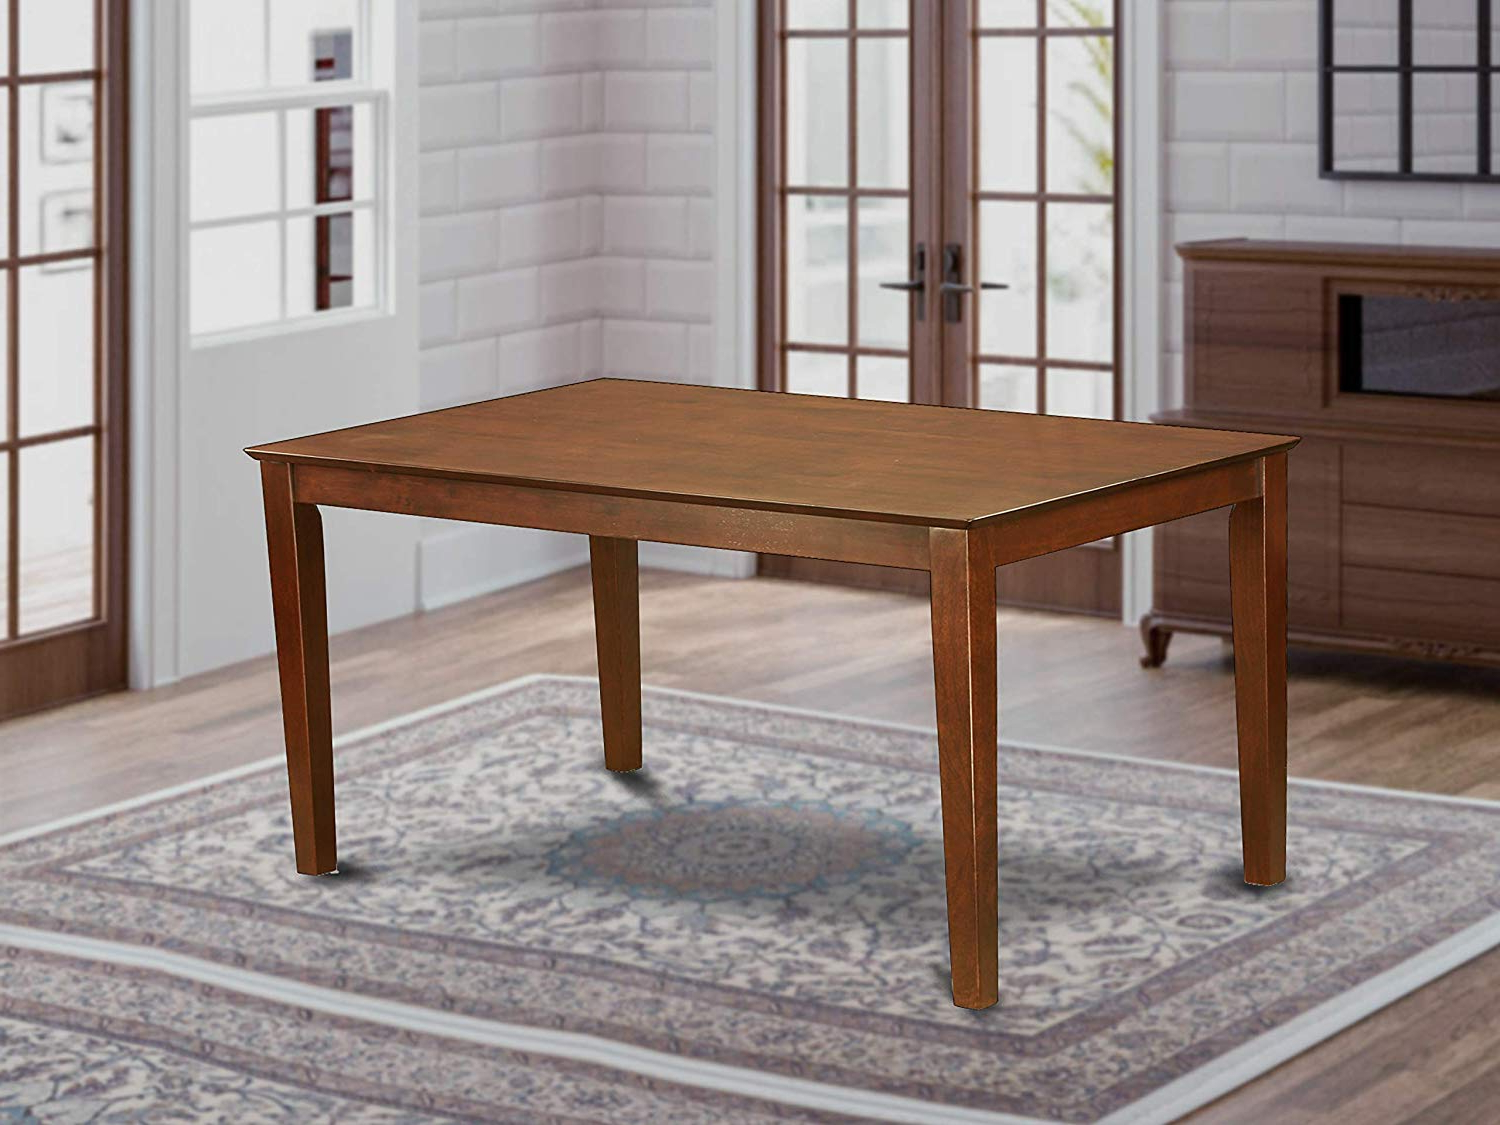 """Best And Newest Capri Rectangular Dining Table 36""""x60"""" With Solid Wood Top – Mahogany Finish Pertaining To Wood Top Dining Tables (View 6 of 30)"""